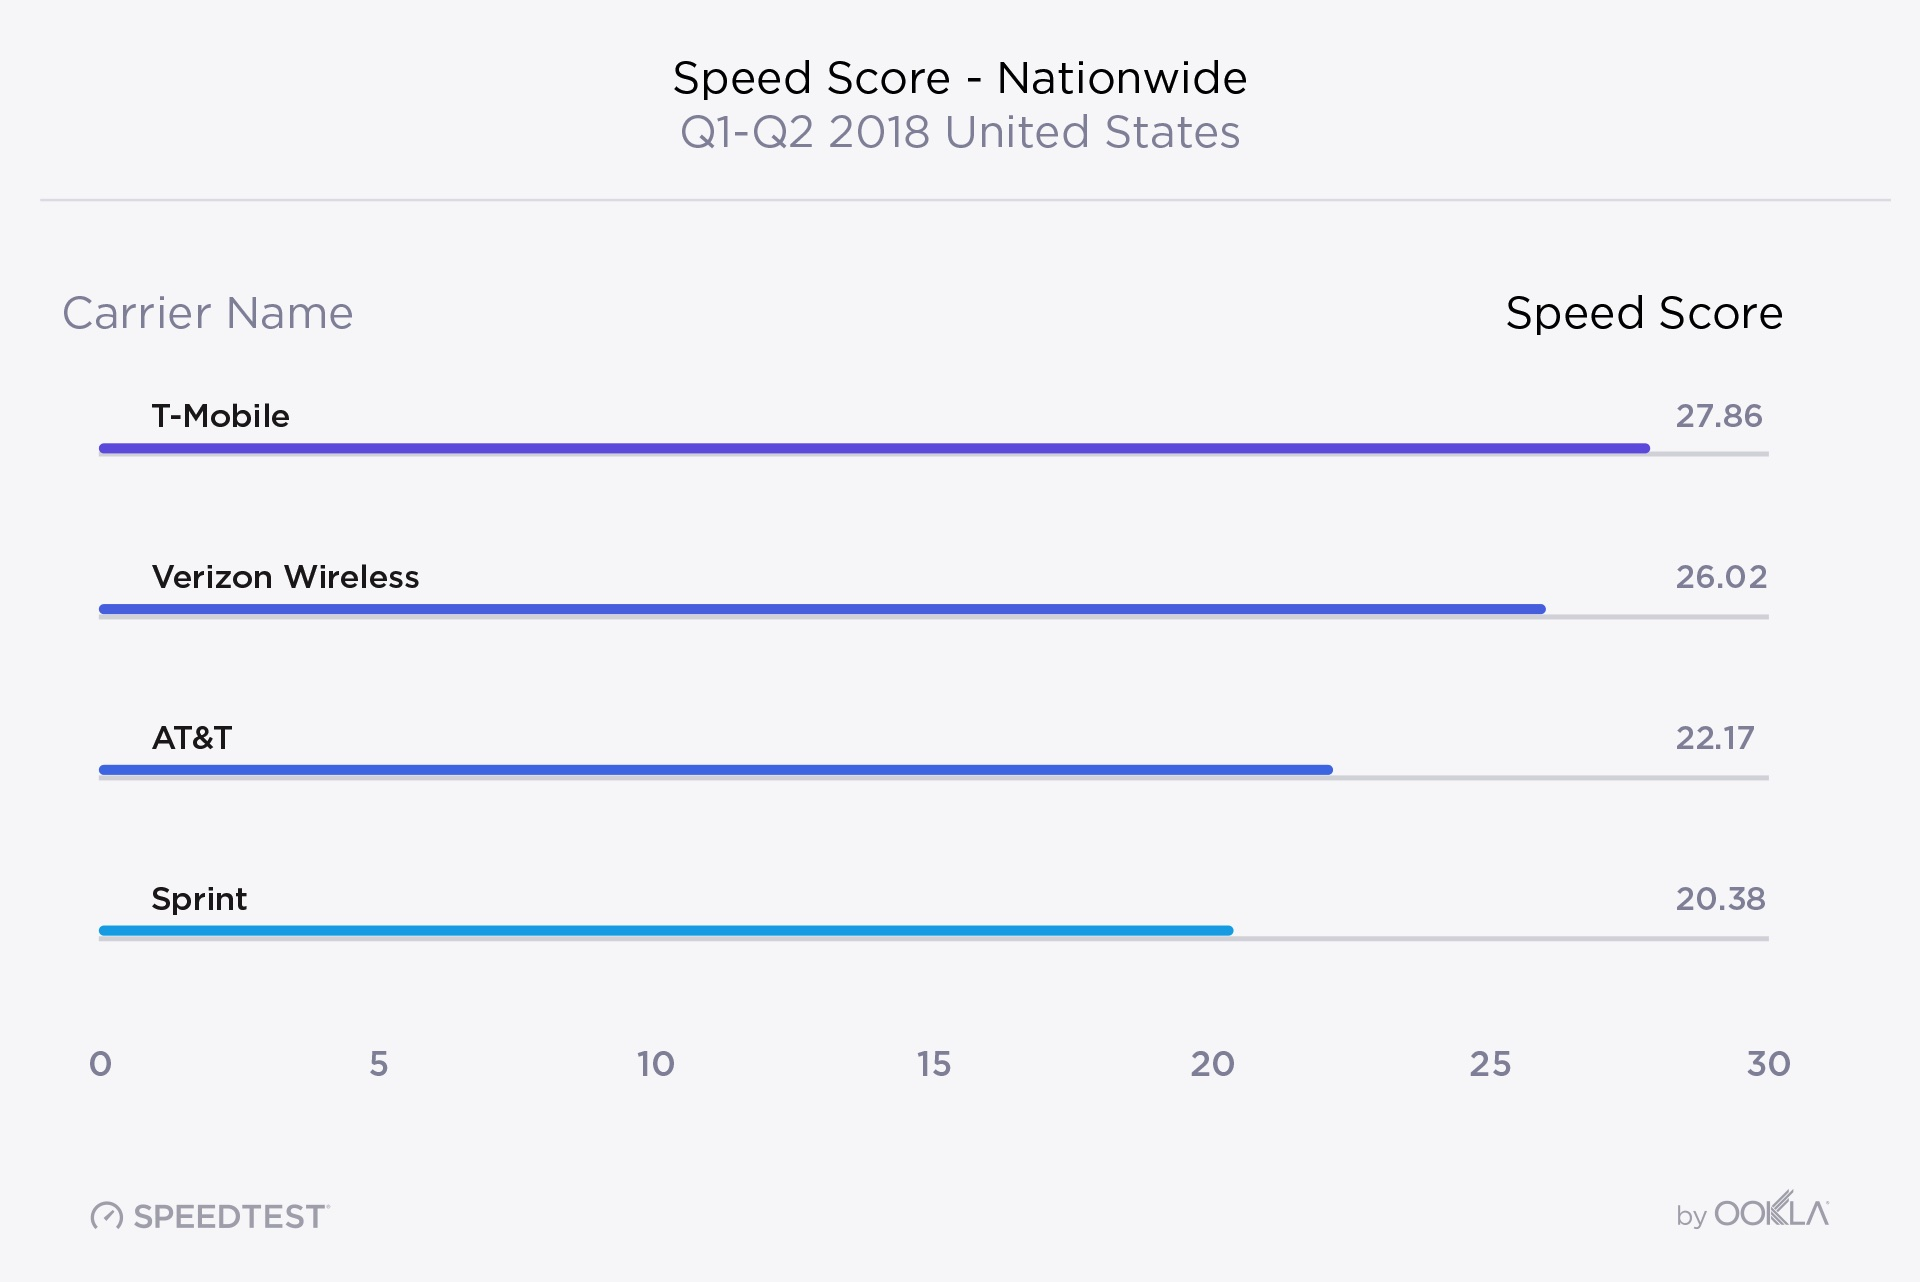 Usa Mobile Speed Score Nationwide